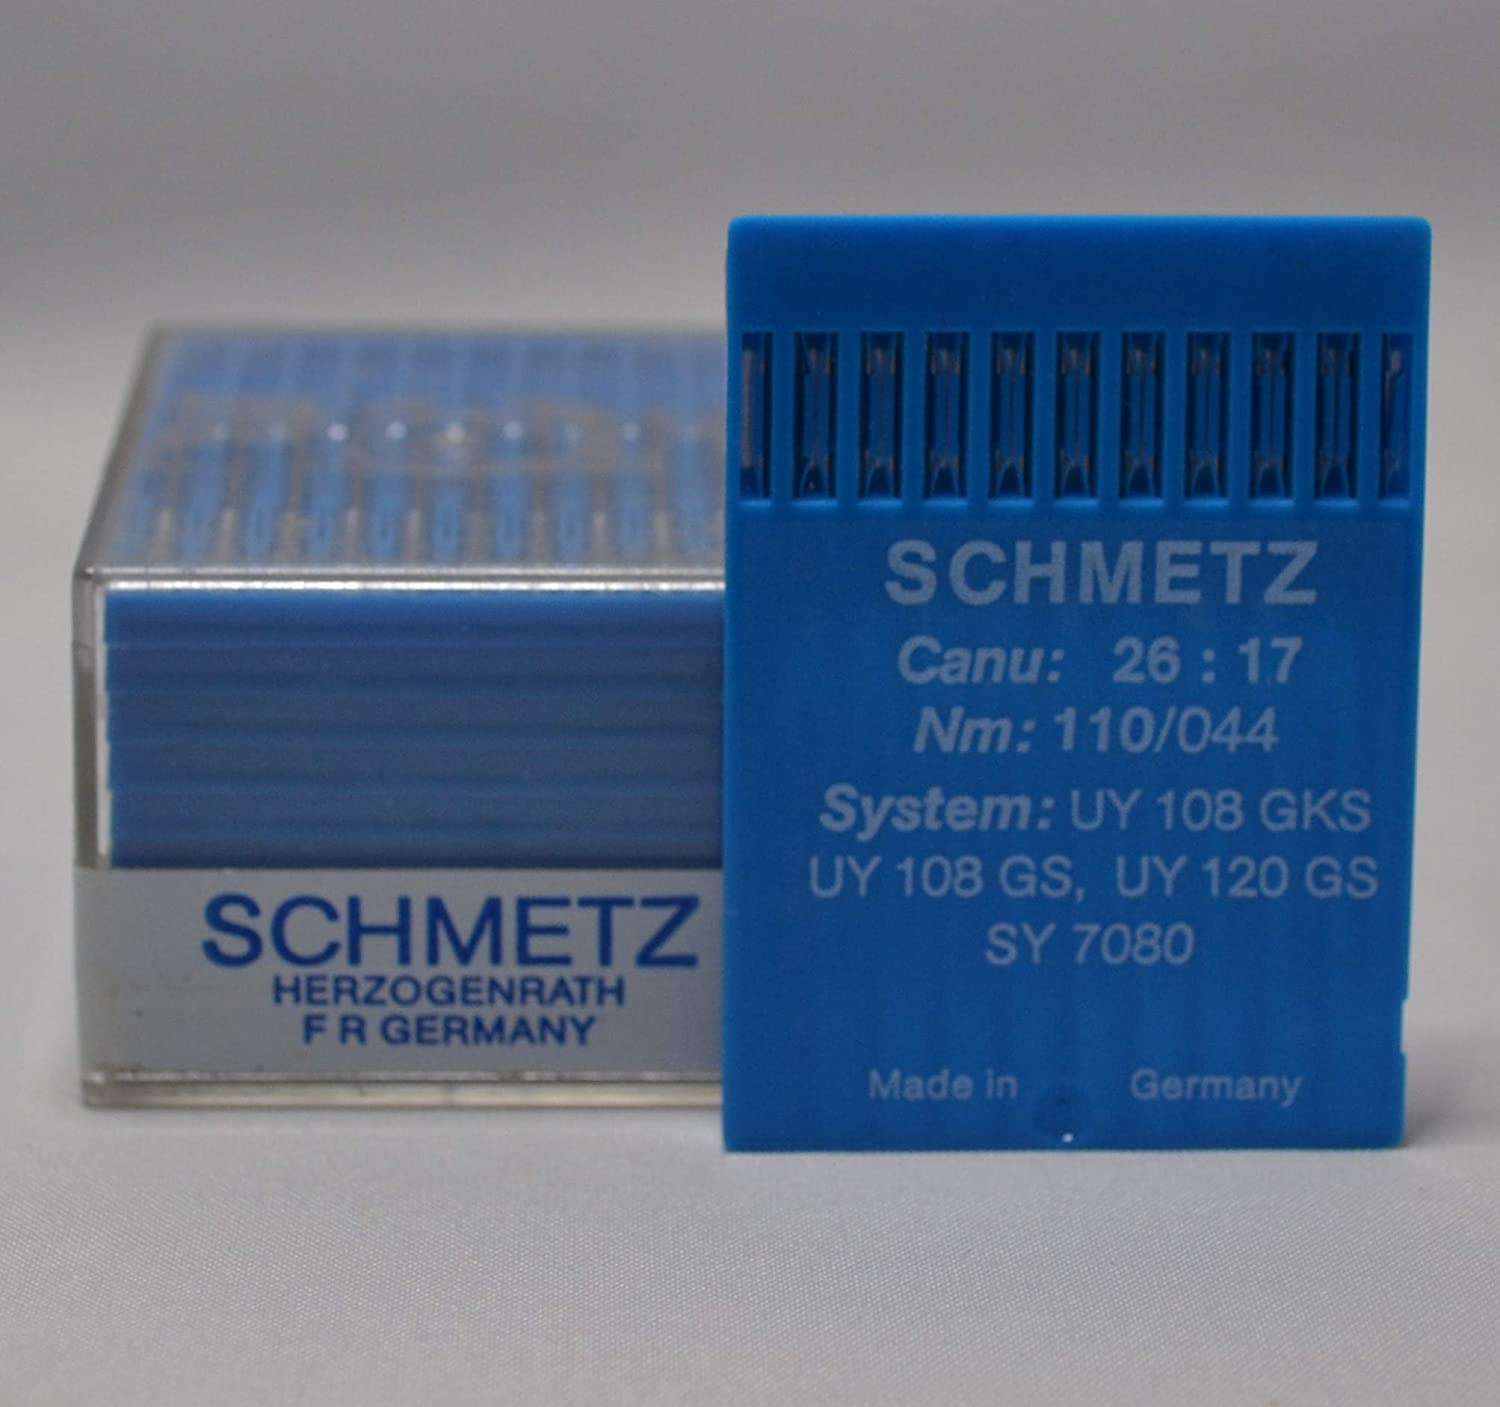 100 SCHMETZ Sewing Machine Needles Nm: 110/044 ; System: UY 108 GKS ; UY 108 GS ; UY 120 GS ; SY 7080